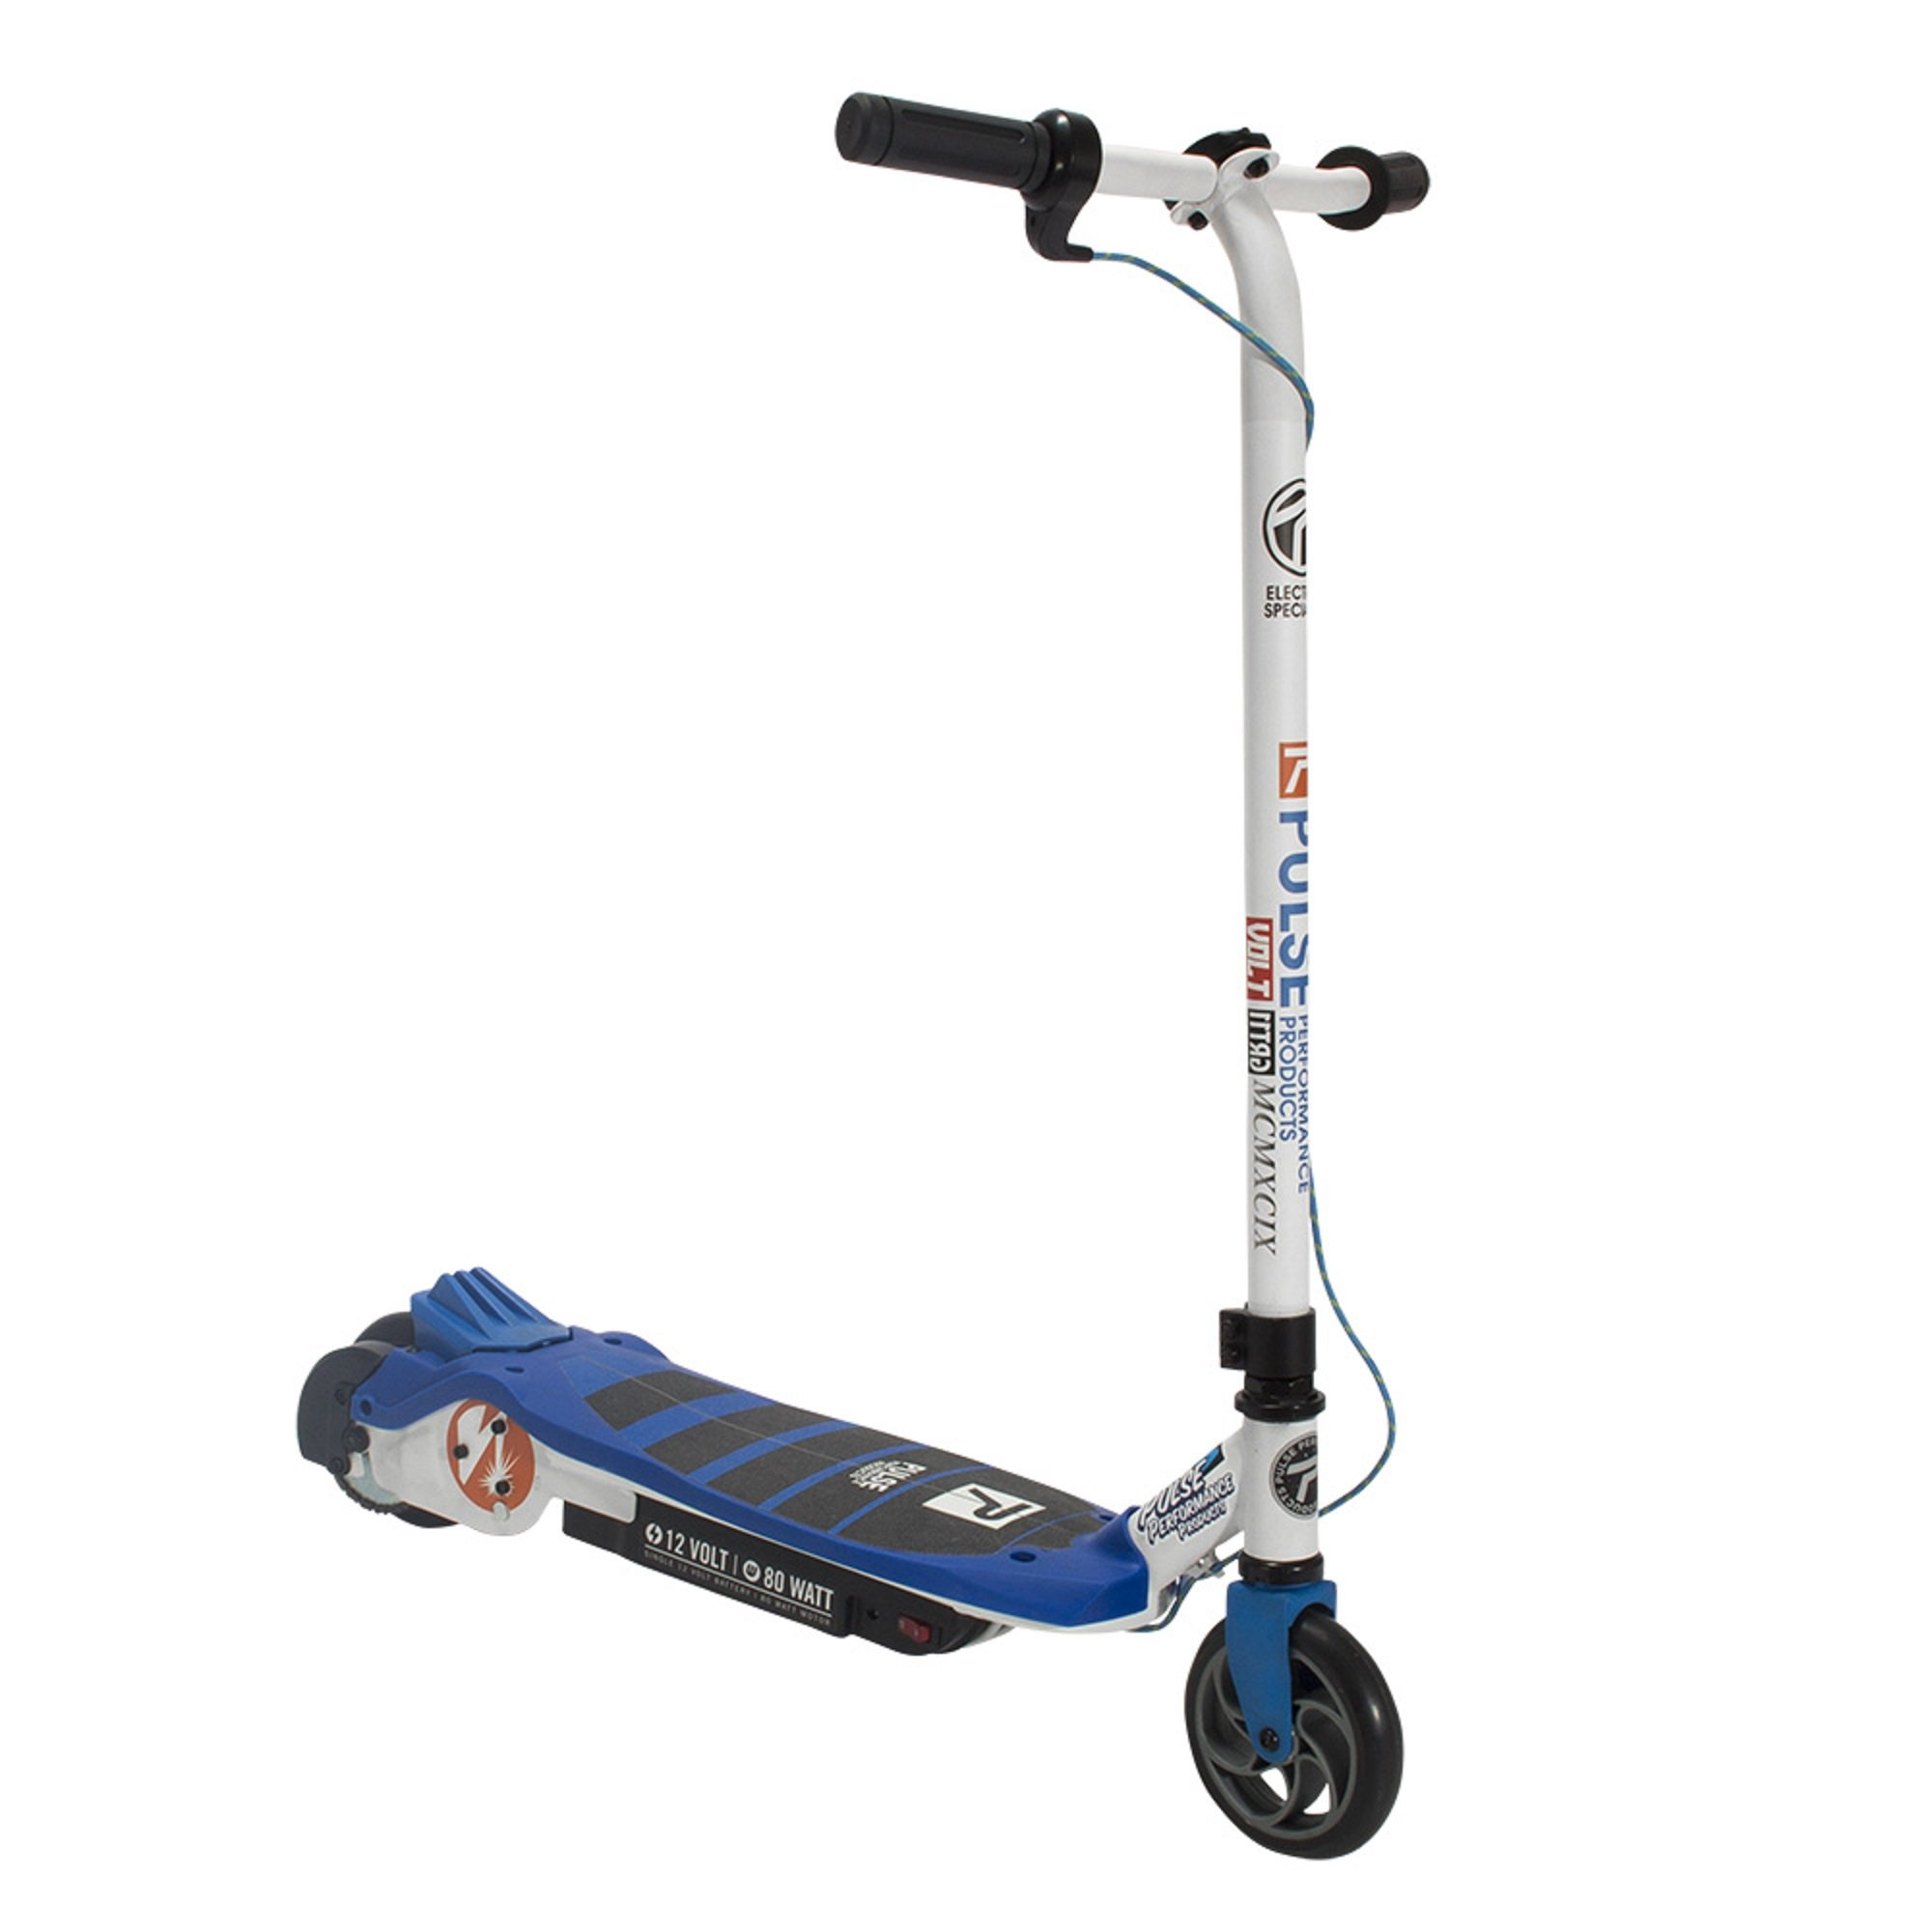 Pulse Performance Products GRT-11 Electric Scooter, Royal Blue by Pulse Performance Products (Image #1)